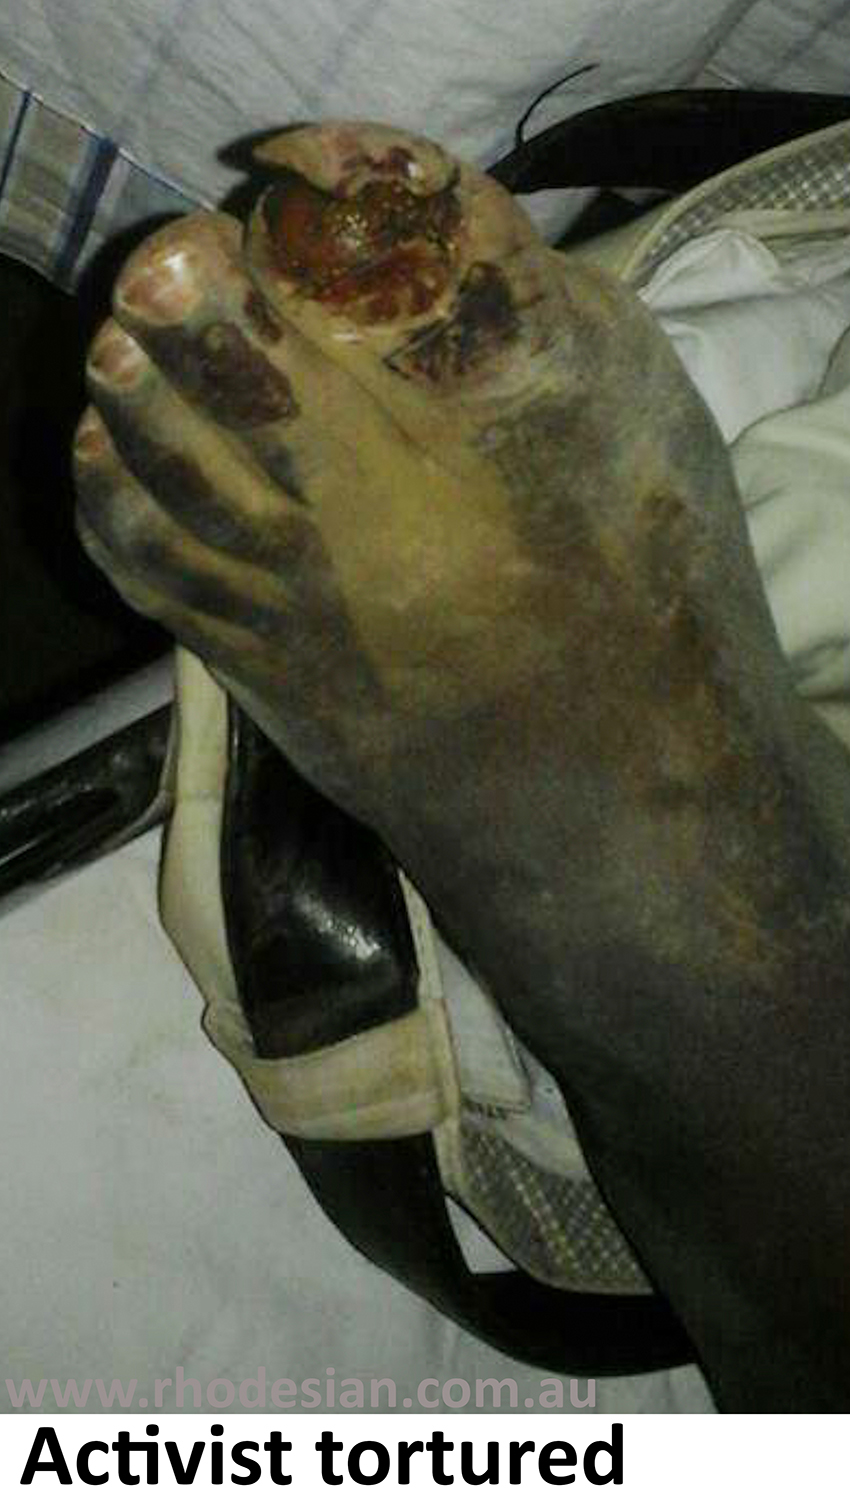 Zimbabwe activist Sylvanos Mudzvova was abducted but relased after torture and removal of big toe nail